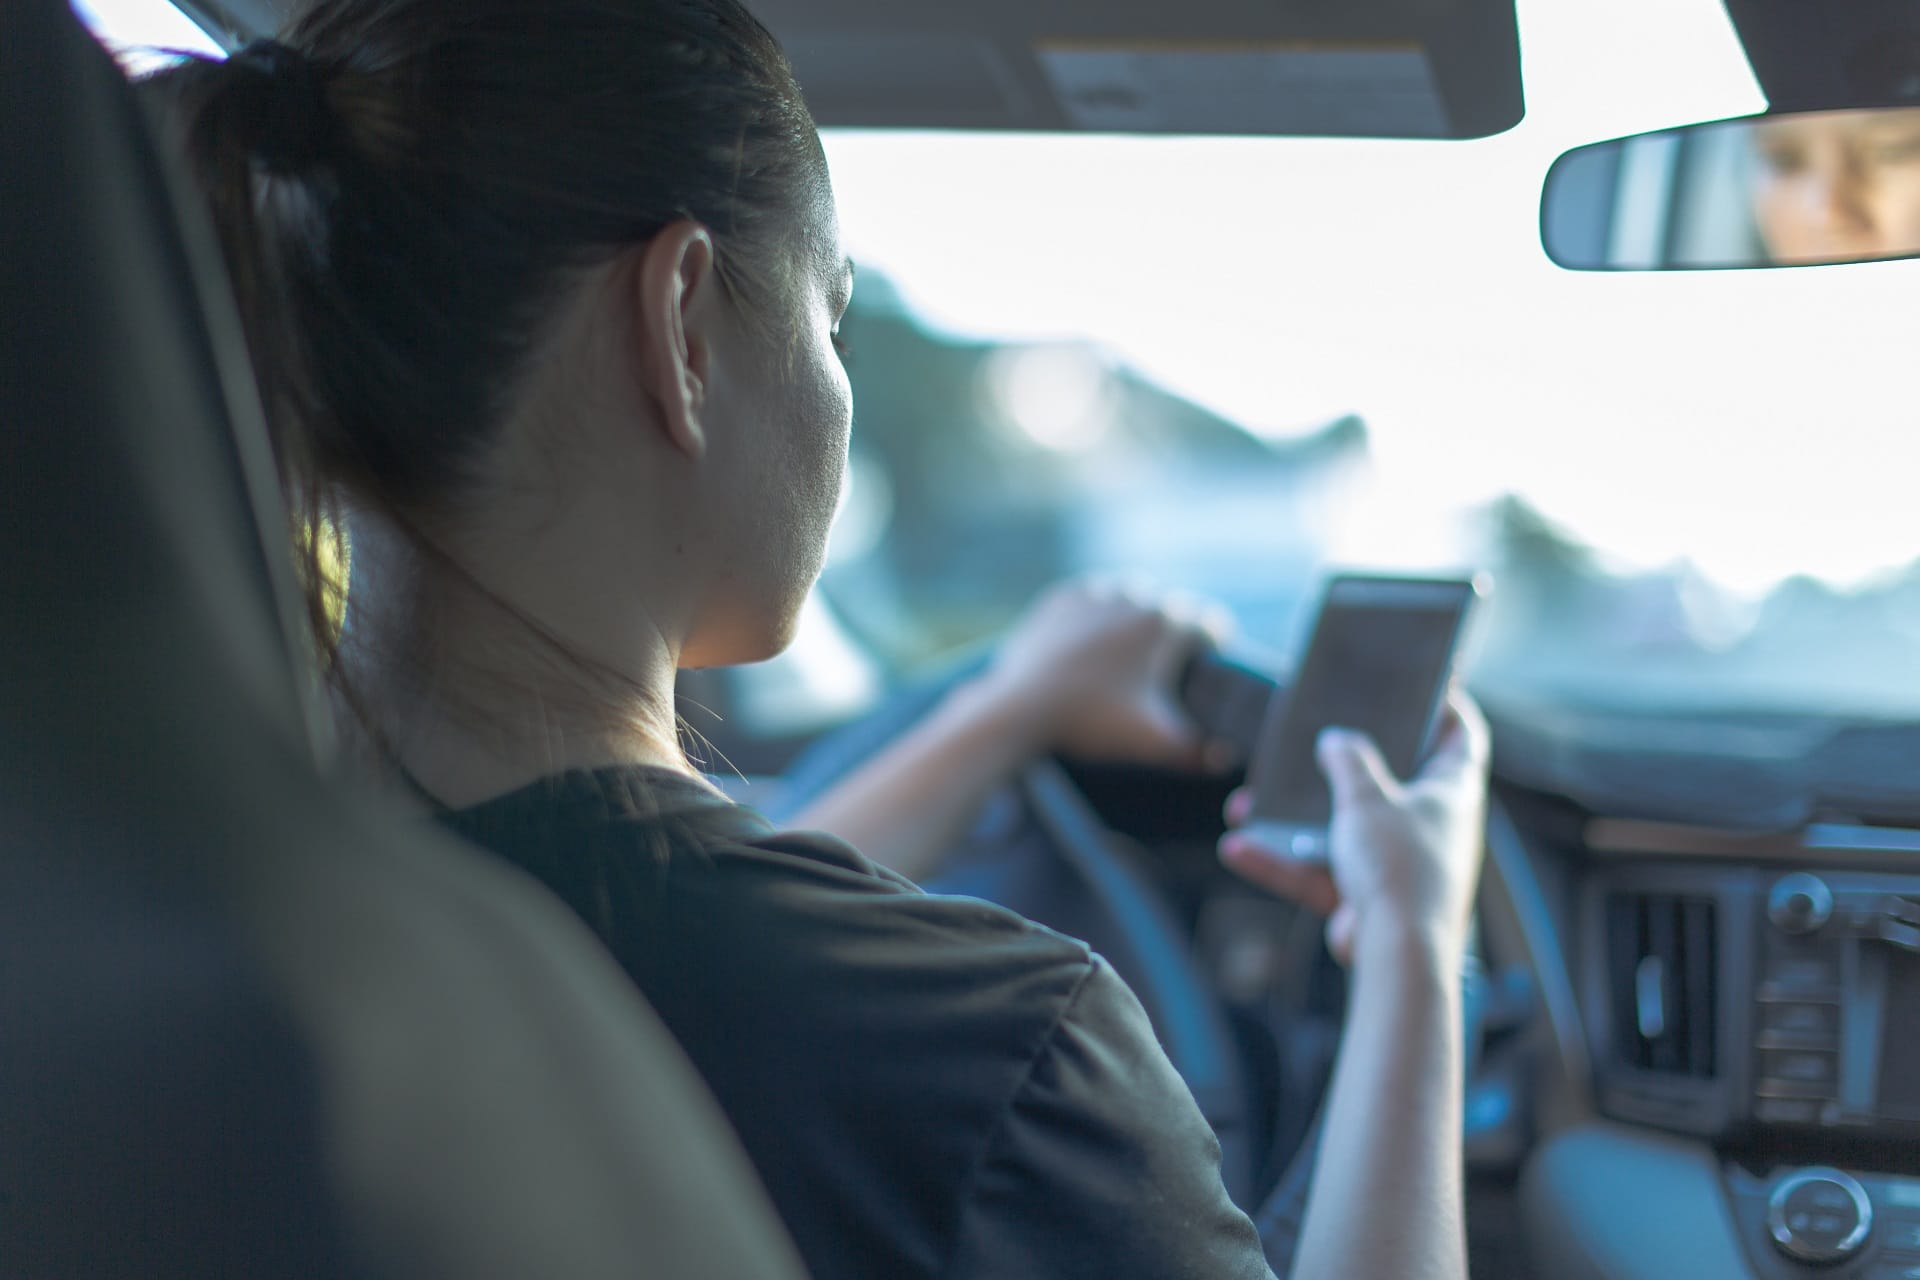 Reckless and Risky Driving Habits are on the Rise Heading Into 2021